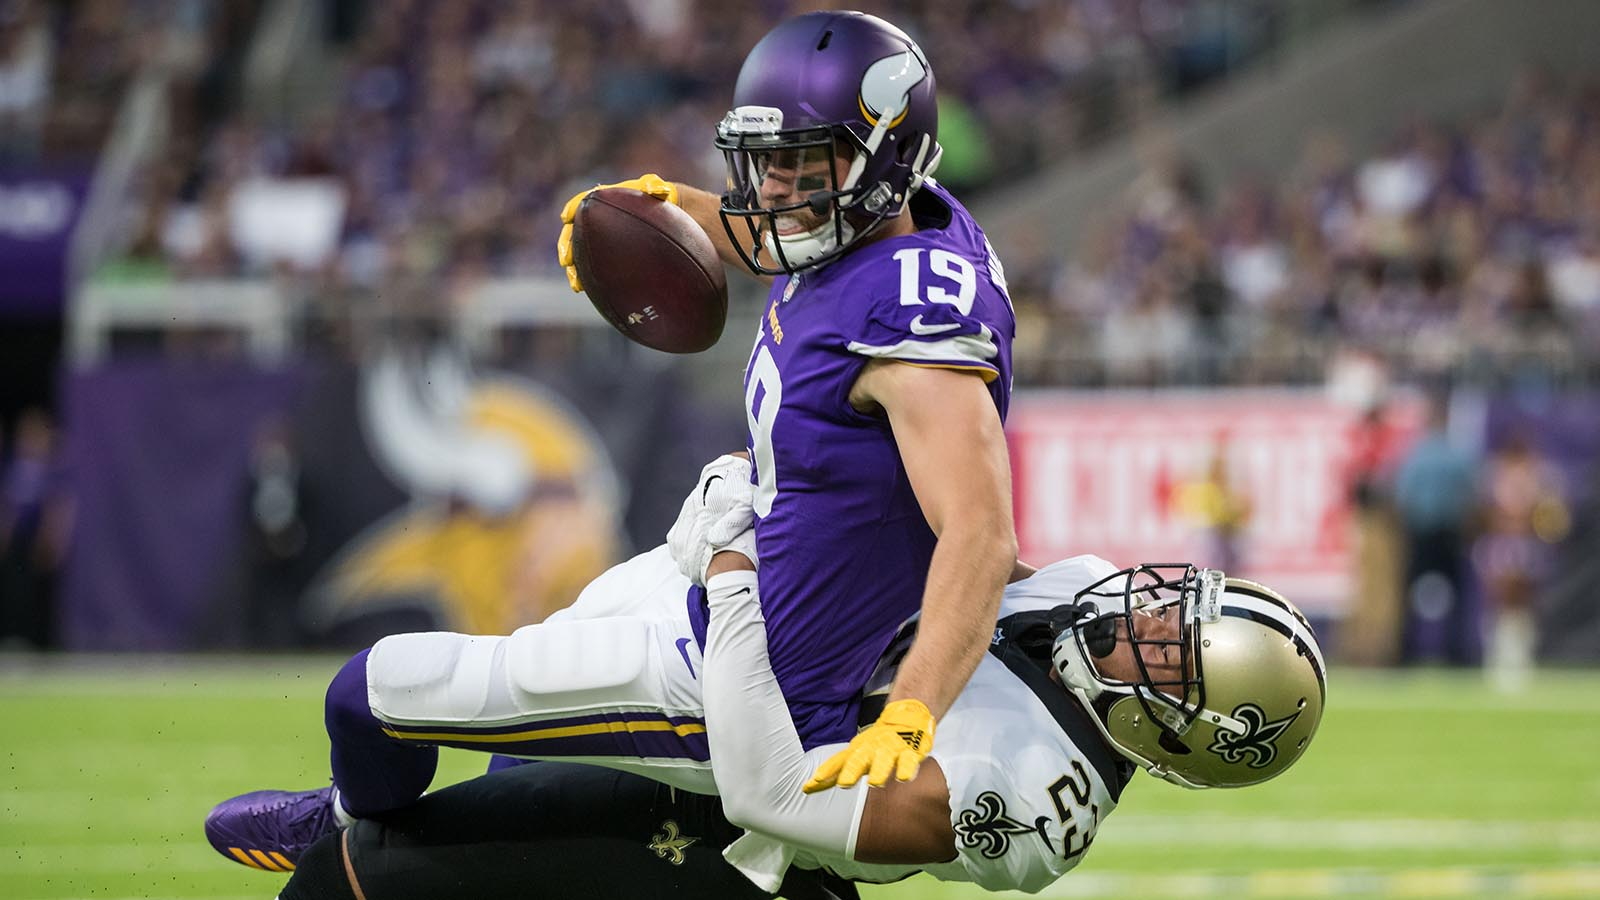 Sep 11, 2017; Minneapolis, MN, USA; Minnesota Vikings wide receiver Adam Thielen (19) is tackled by New Orleans Saints cornerback Marshon Lattimore (23) during the first quarter at U.S. Bank Stadium. Mandatory Credit: Brace Hemmelgarn-USA TODAY Sports